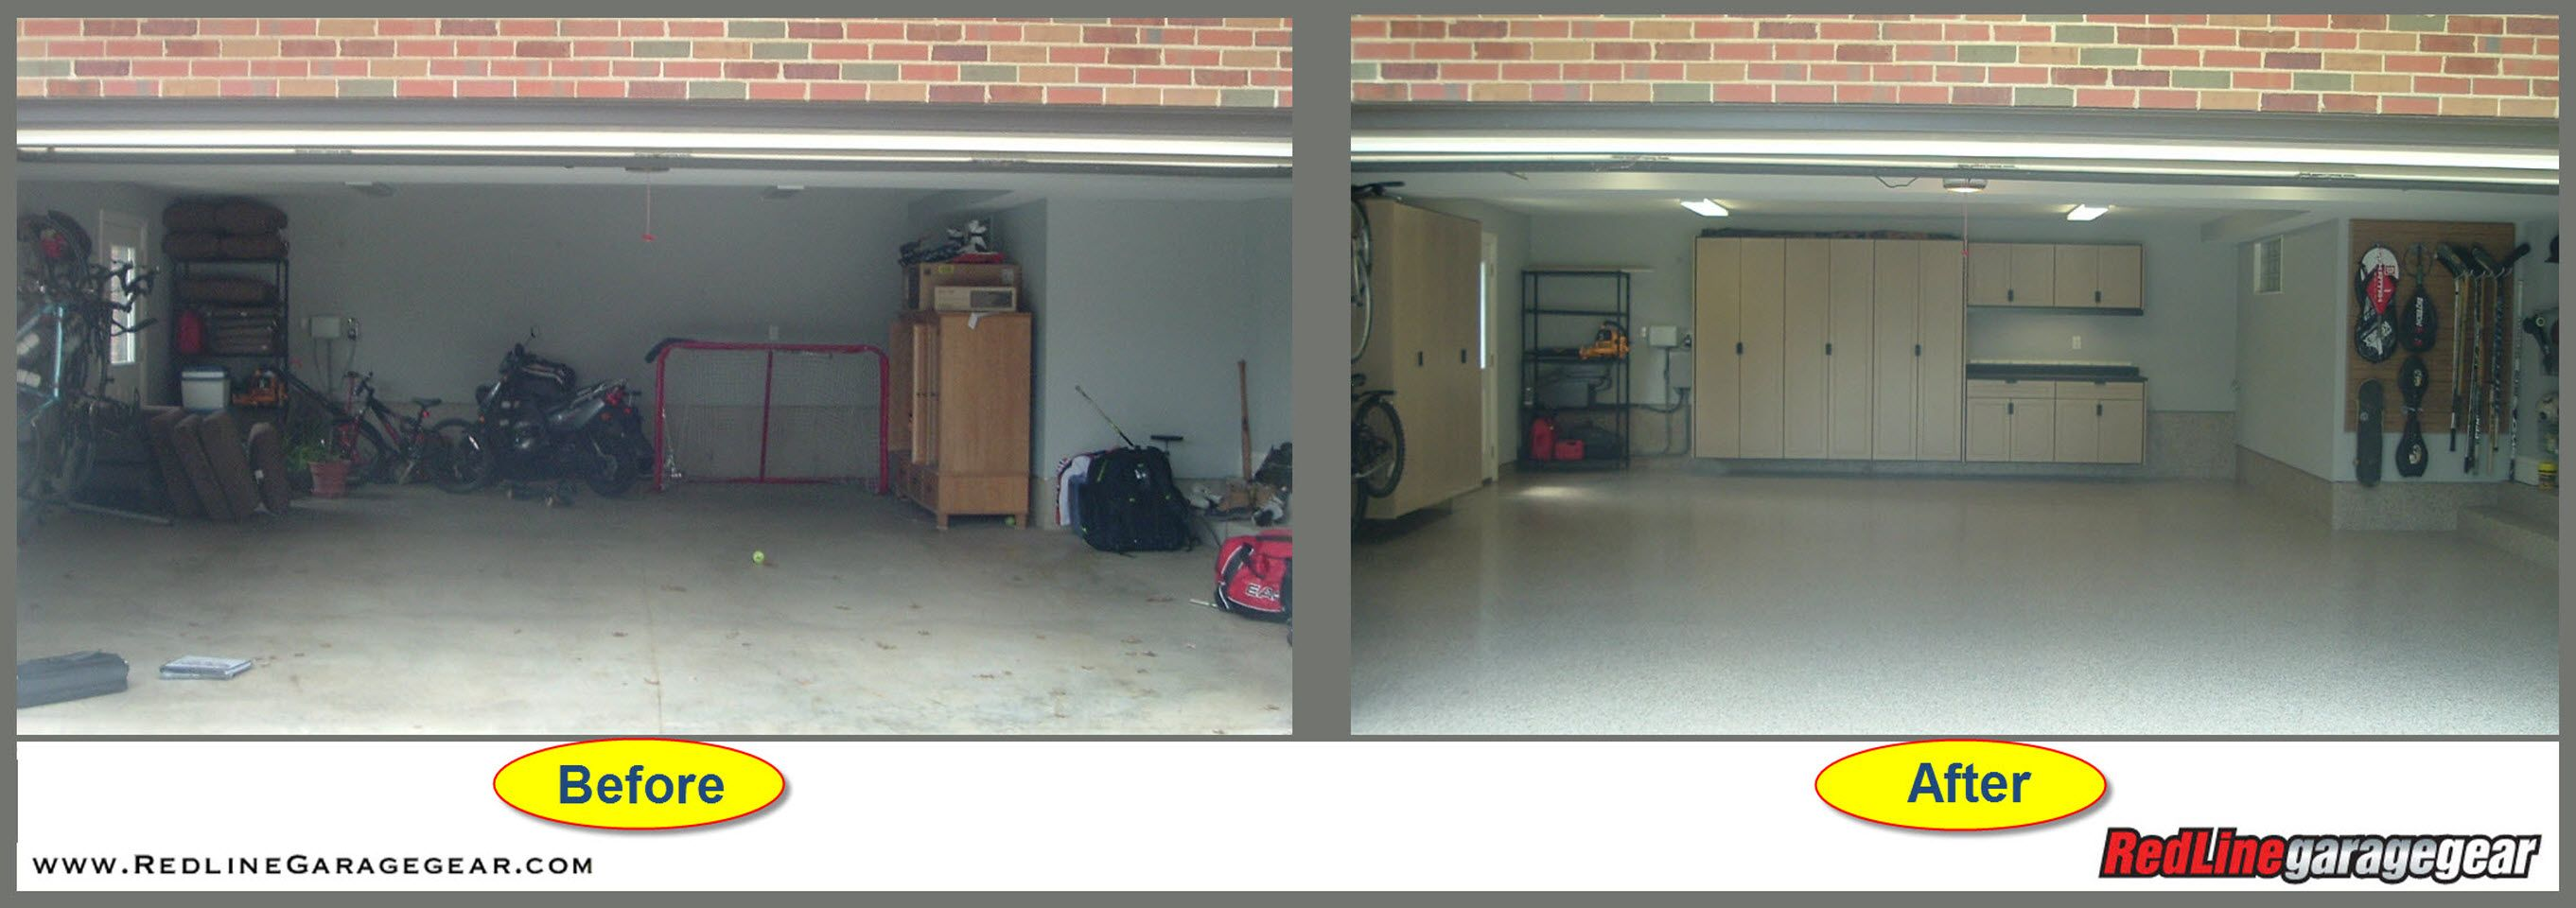 garage decor and more before and after garage cabinets pic 2 - Garage Decor